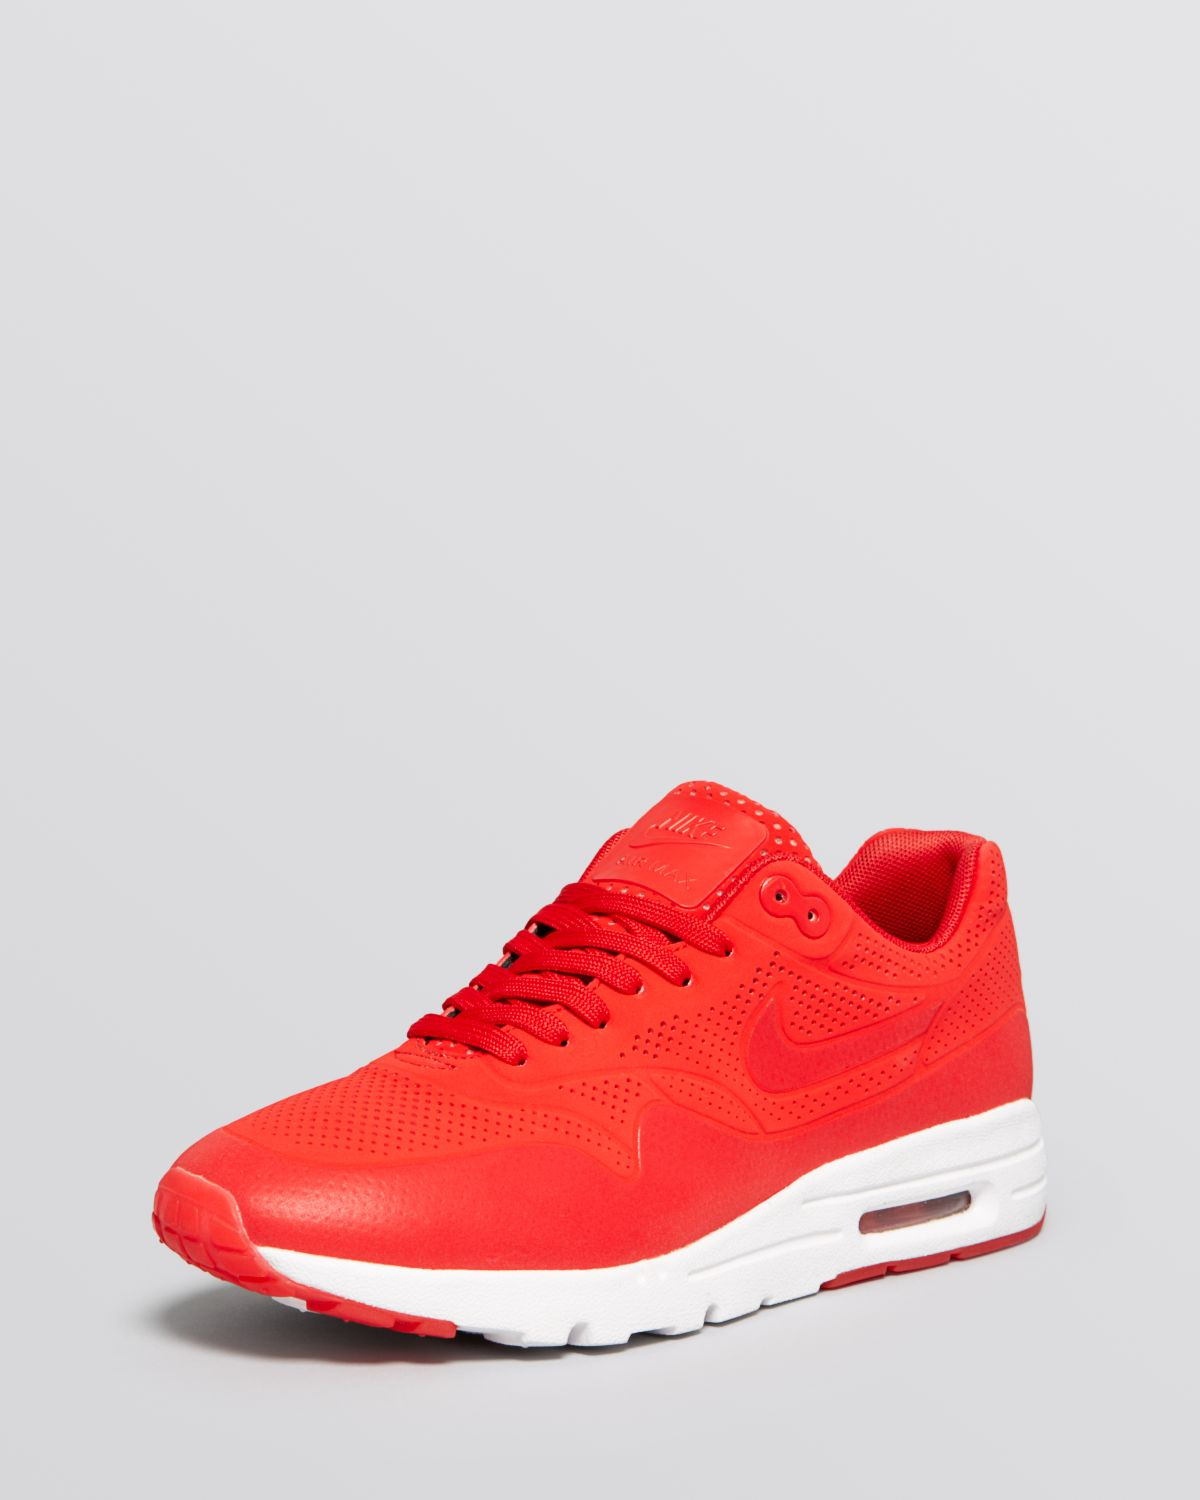 lyst nike lace up sneakers women 39 s air max 1 ultra moire in red. Black Bedroom Furniture Sets. Home Design Ideas